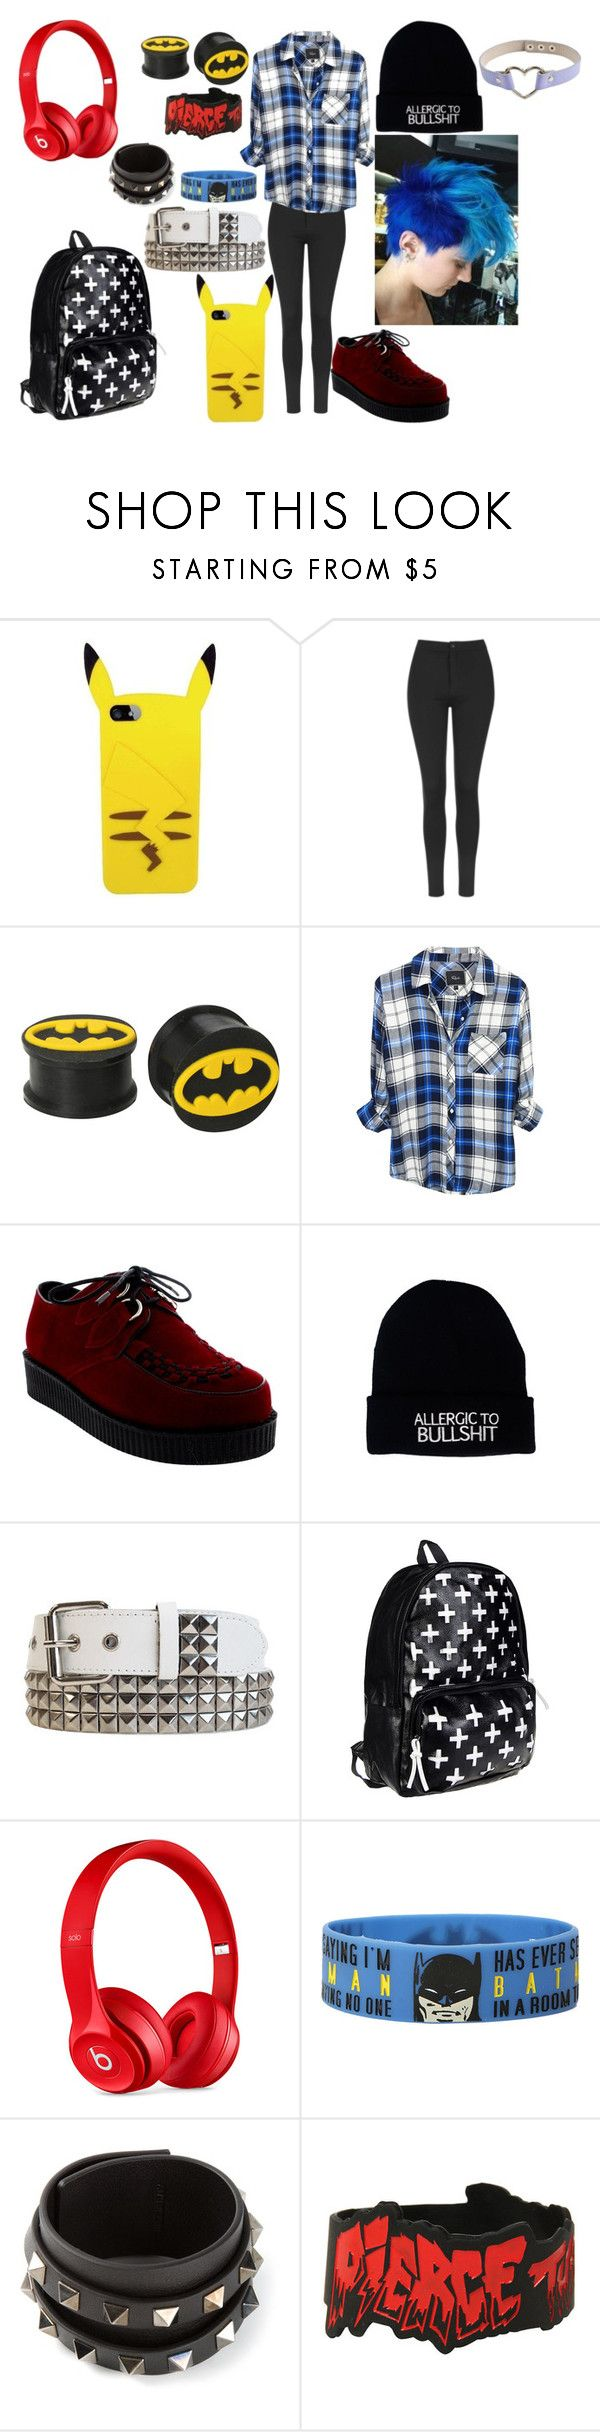 "f52e43d07d22e605109a412c22c8f653 - ""Ayee"" by dino-satan666 ❤ liked on Polyvore featuring Topshop, Hot Topic, Rail..."